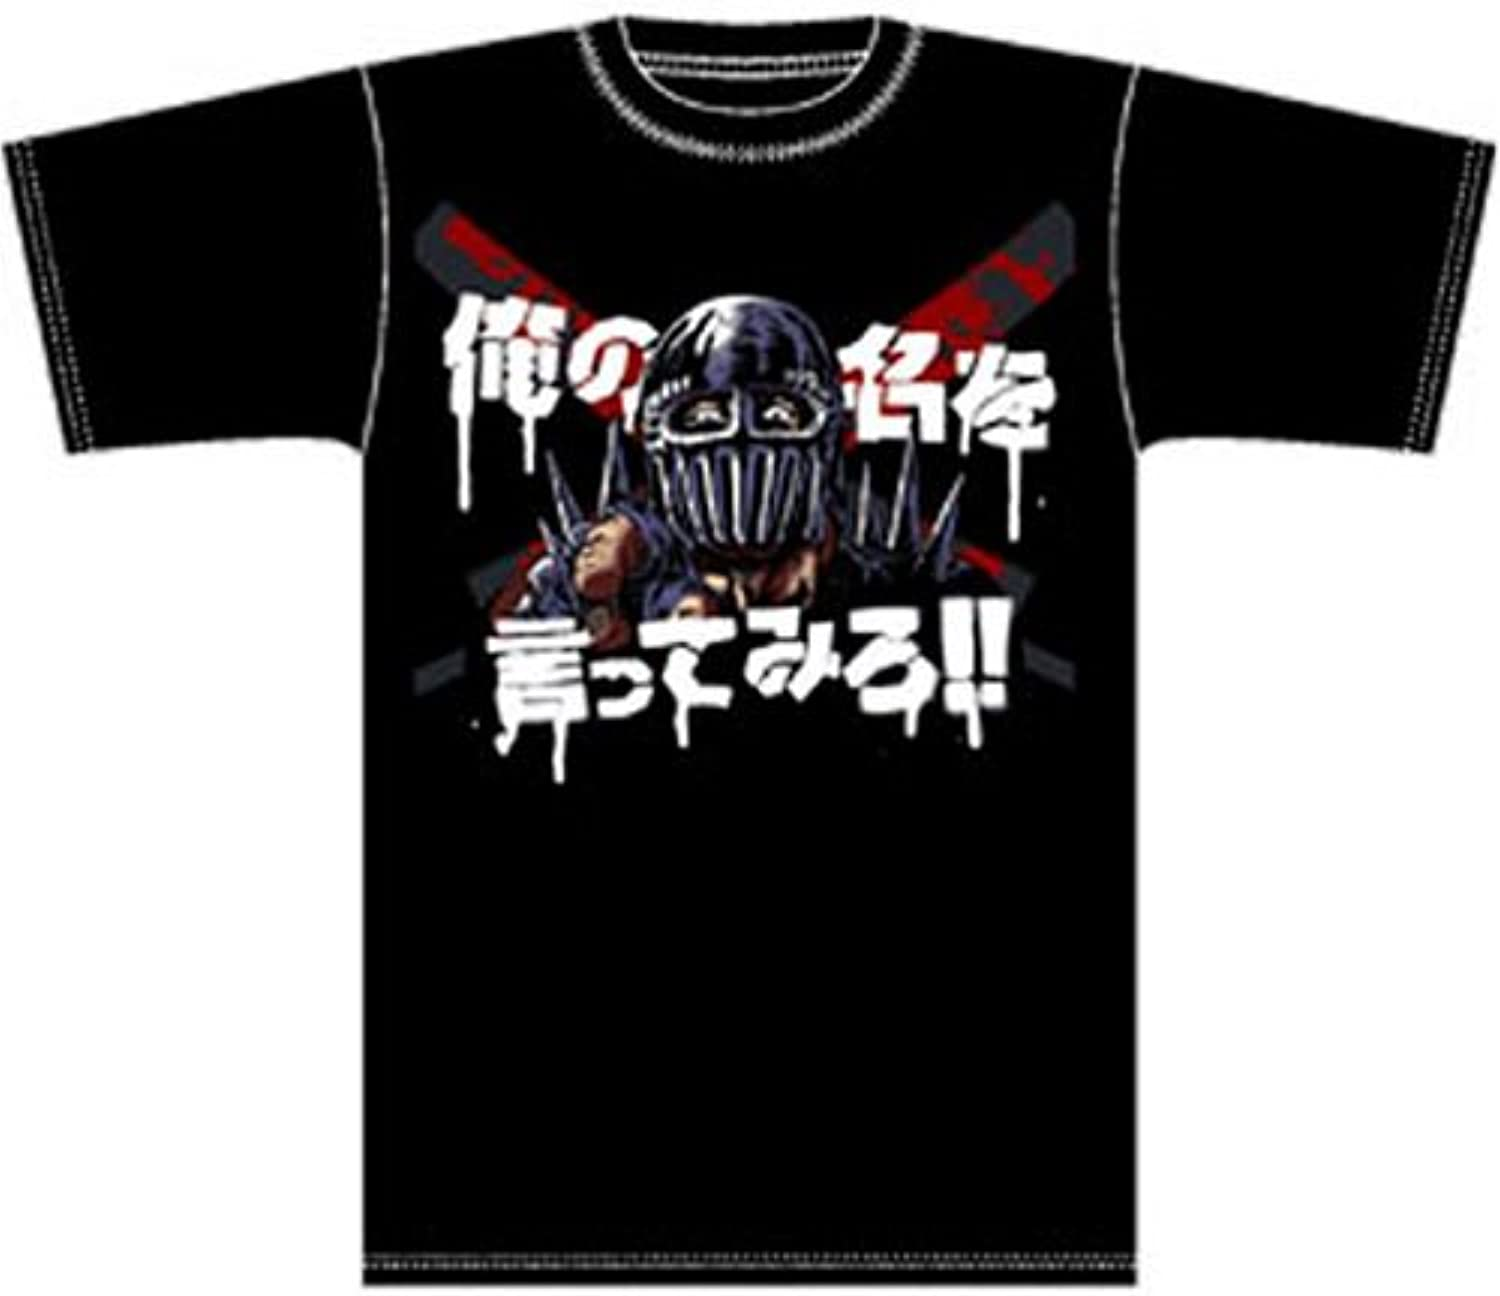 Fist of the North Star Let's hear you say my name   Tshirt Black (L)